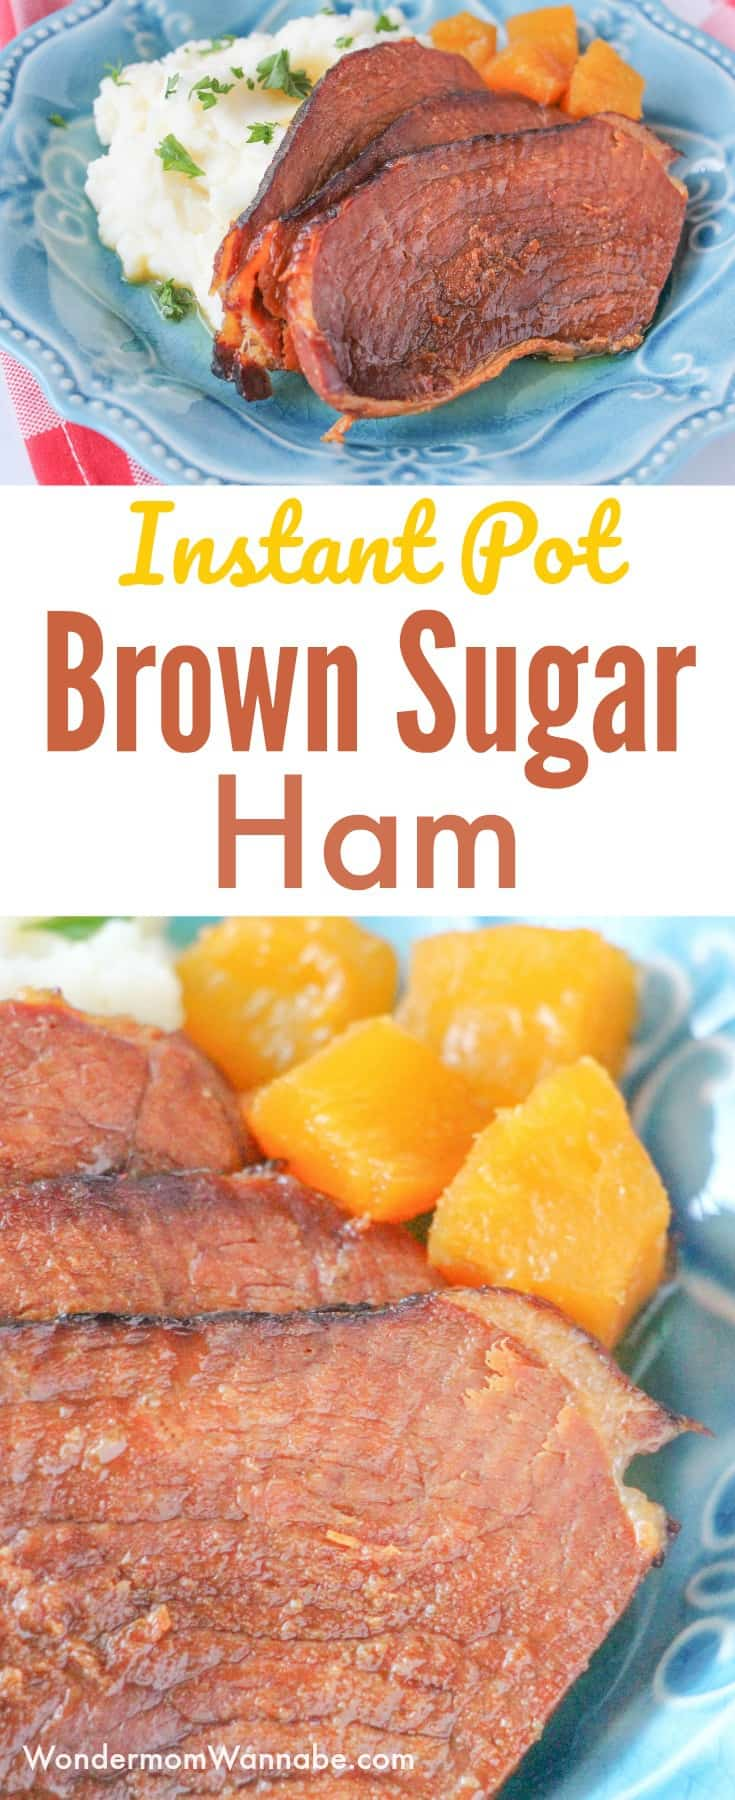 This Instant Pot Brown Sugar Ham is the perfect main dish for Sunday or holiday dinners. You won't believe how easy it is! #instantpot #ham #easydinner #easyrecipes